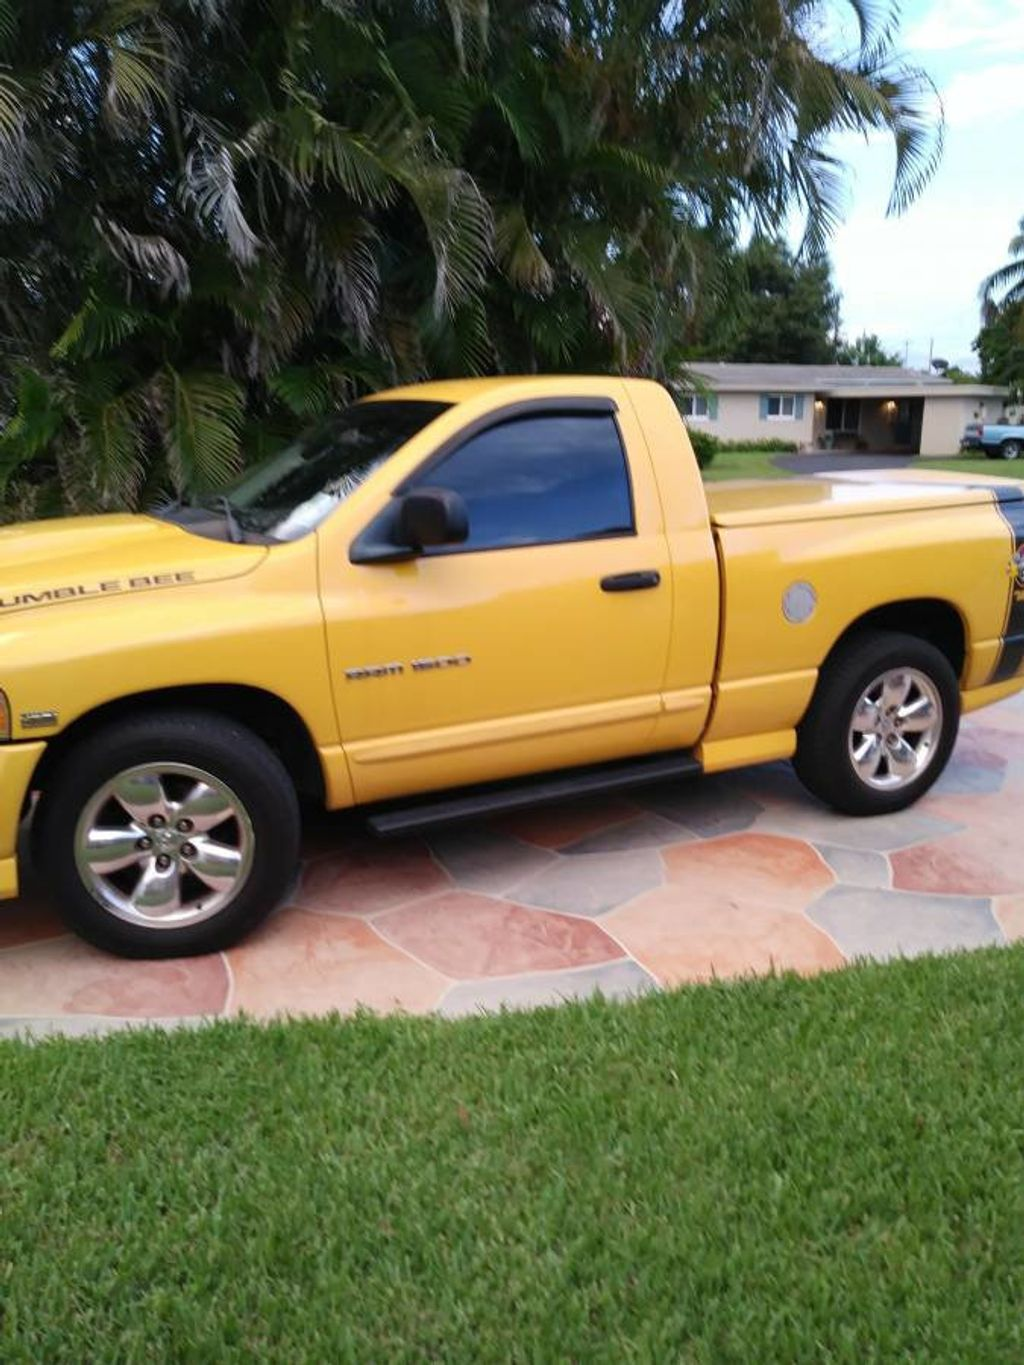 2005 Dodge Ram 1500 Rumble Bee Limited Edition For Sale - 17386933 - 6